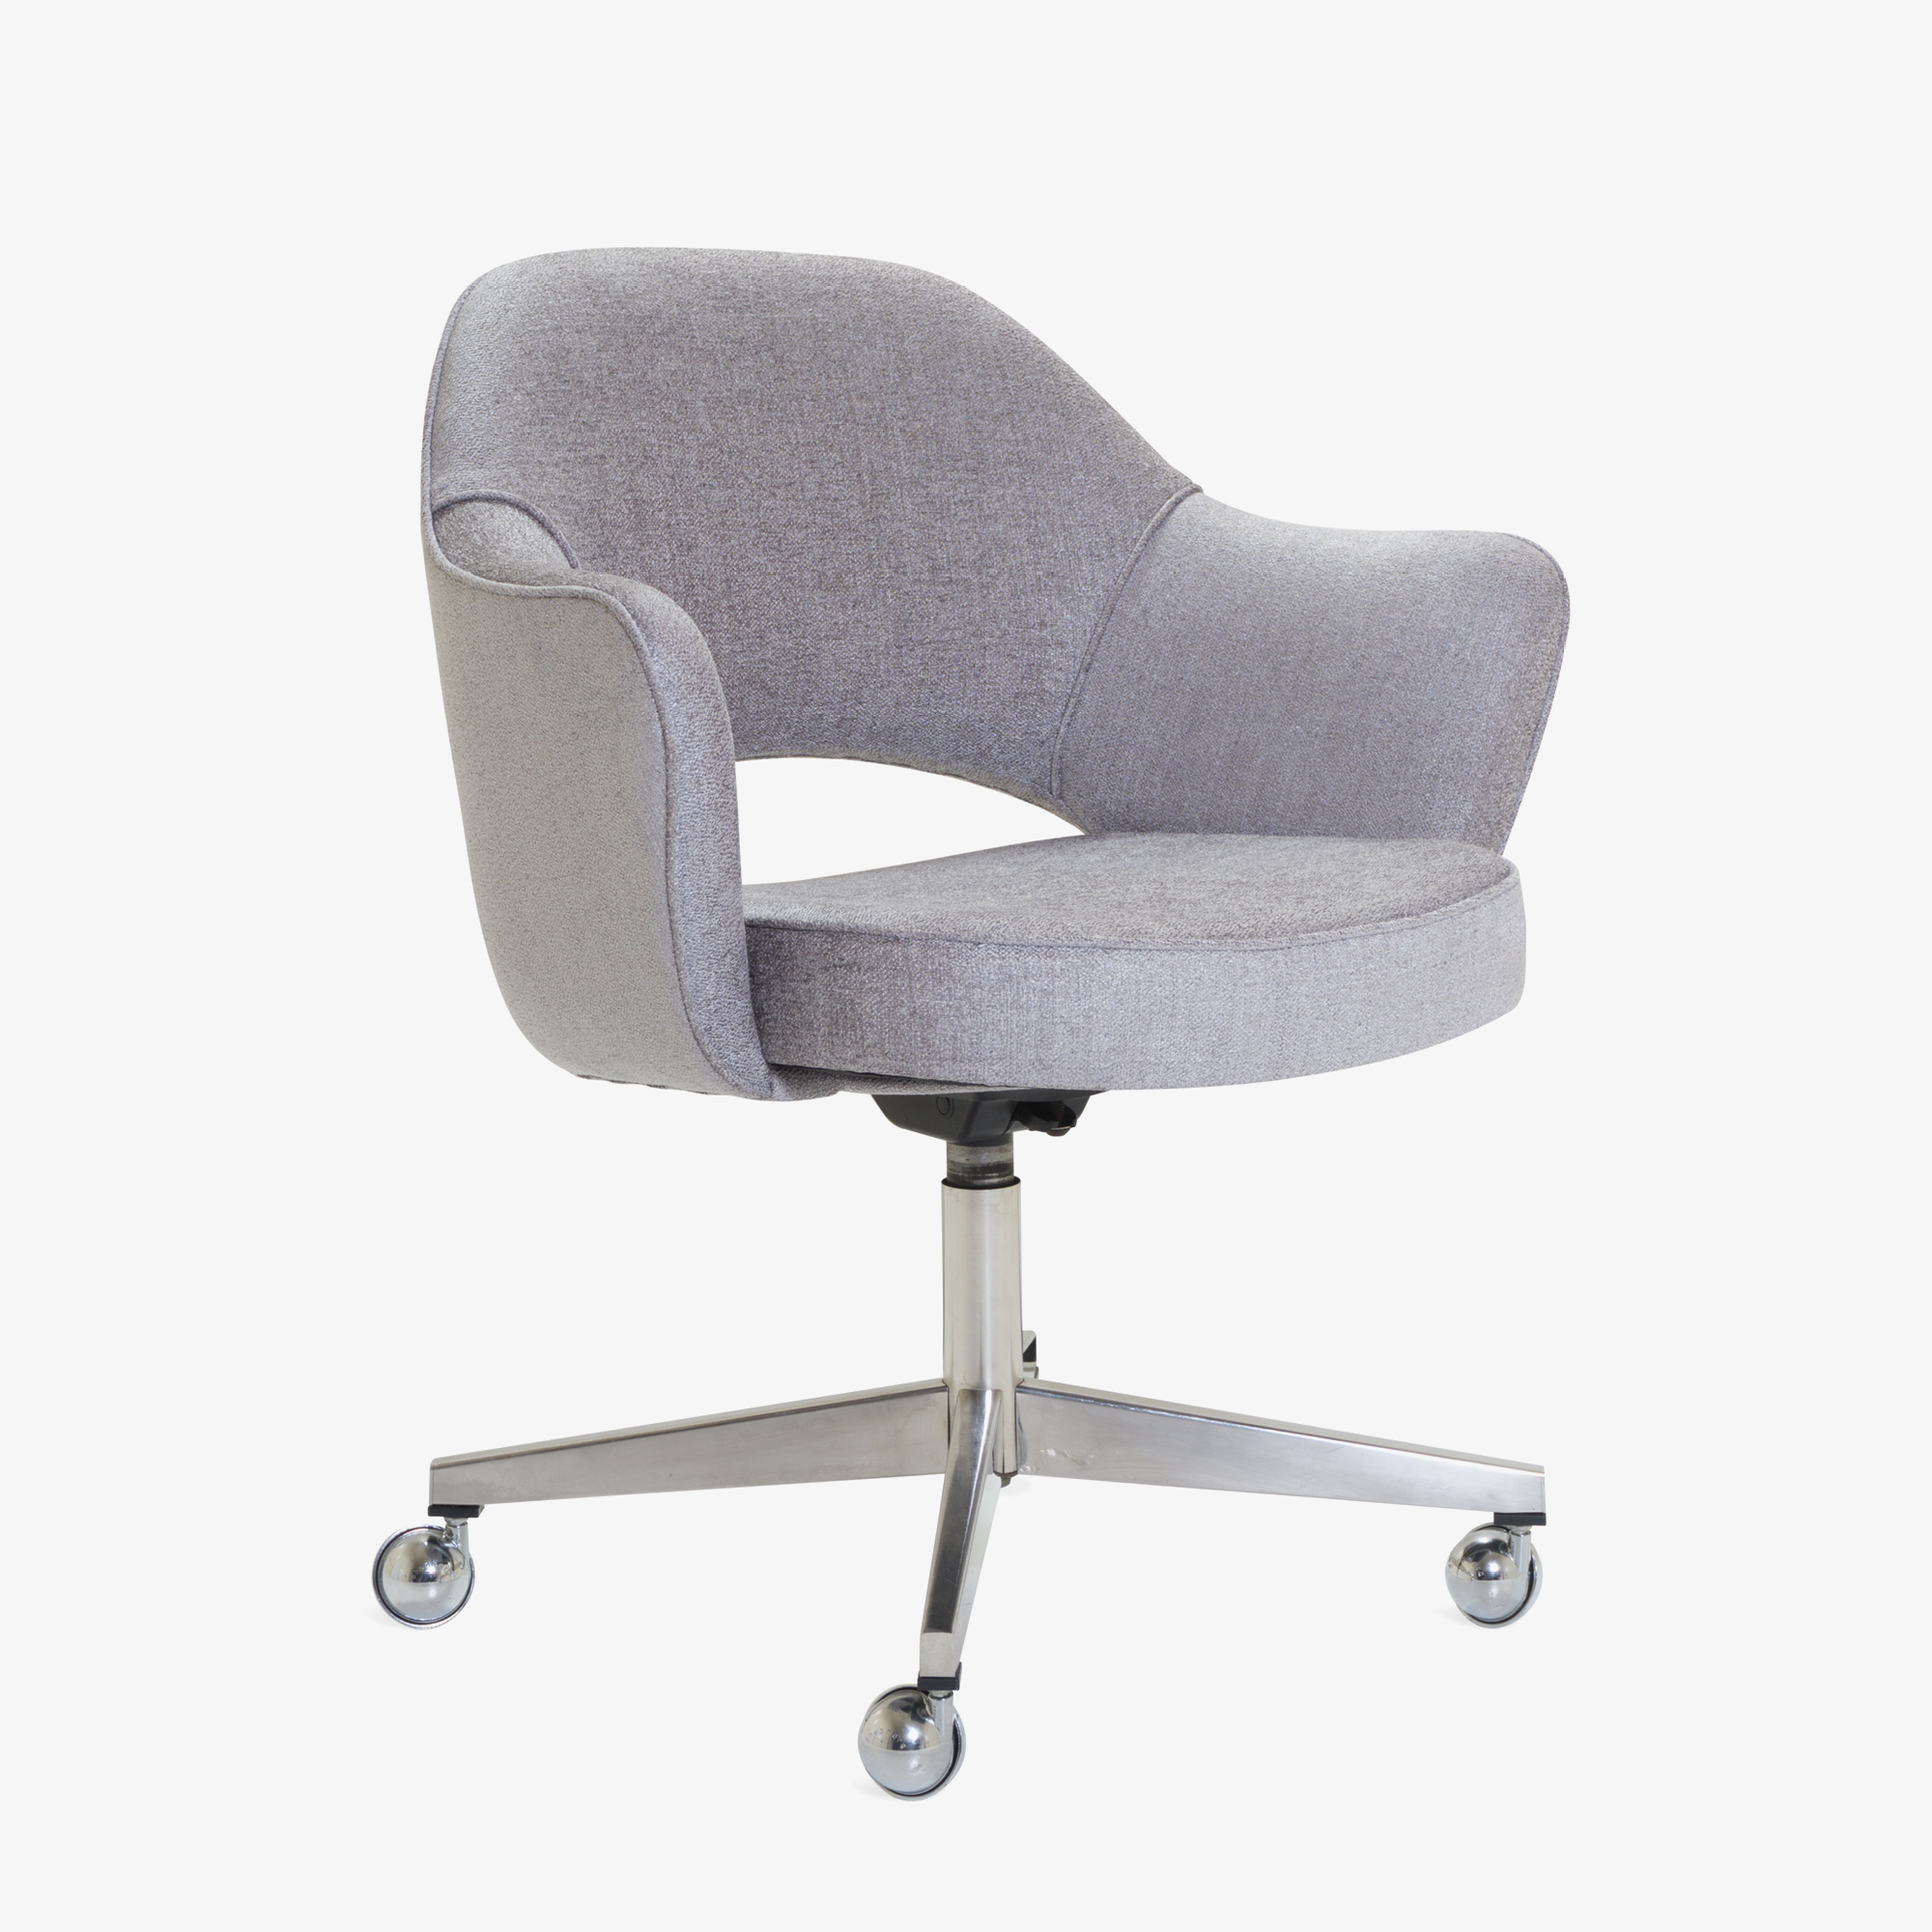 Saarinen Executive Arm Chair in Sterling, Swivel Base.png